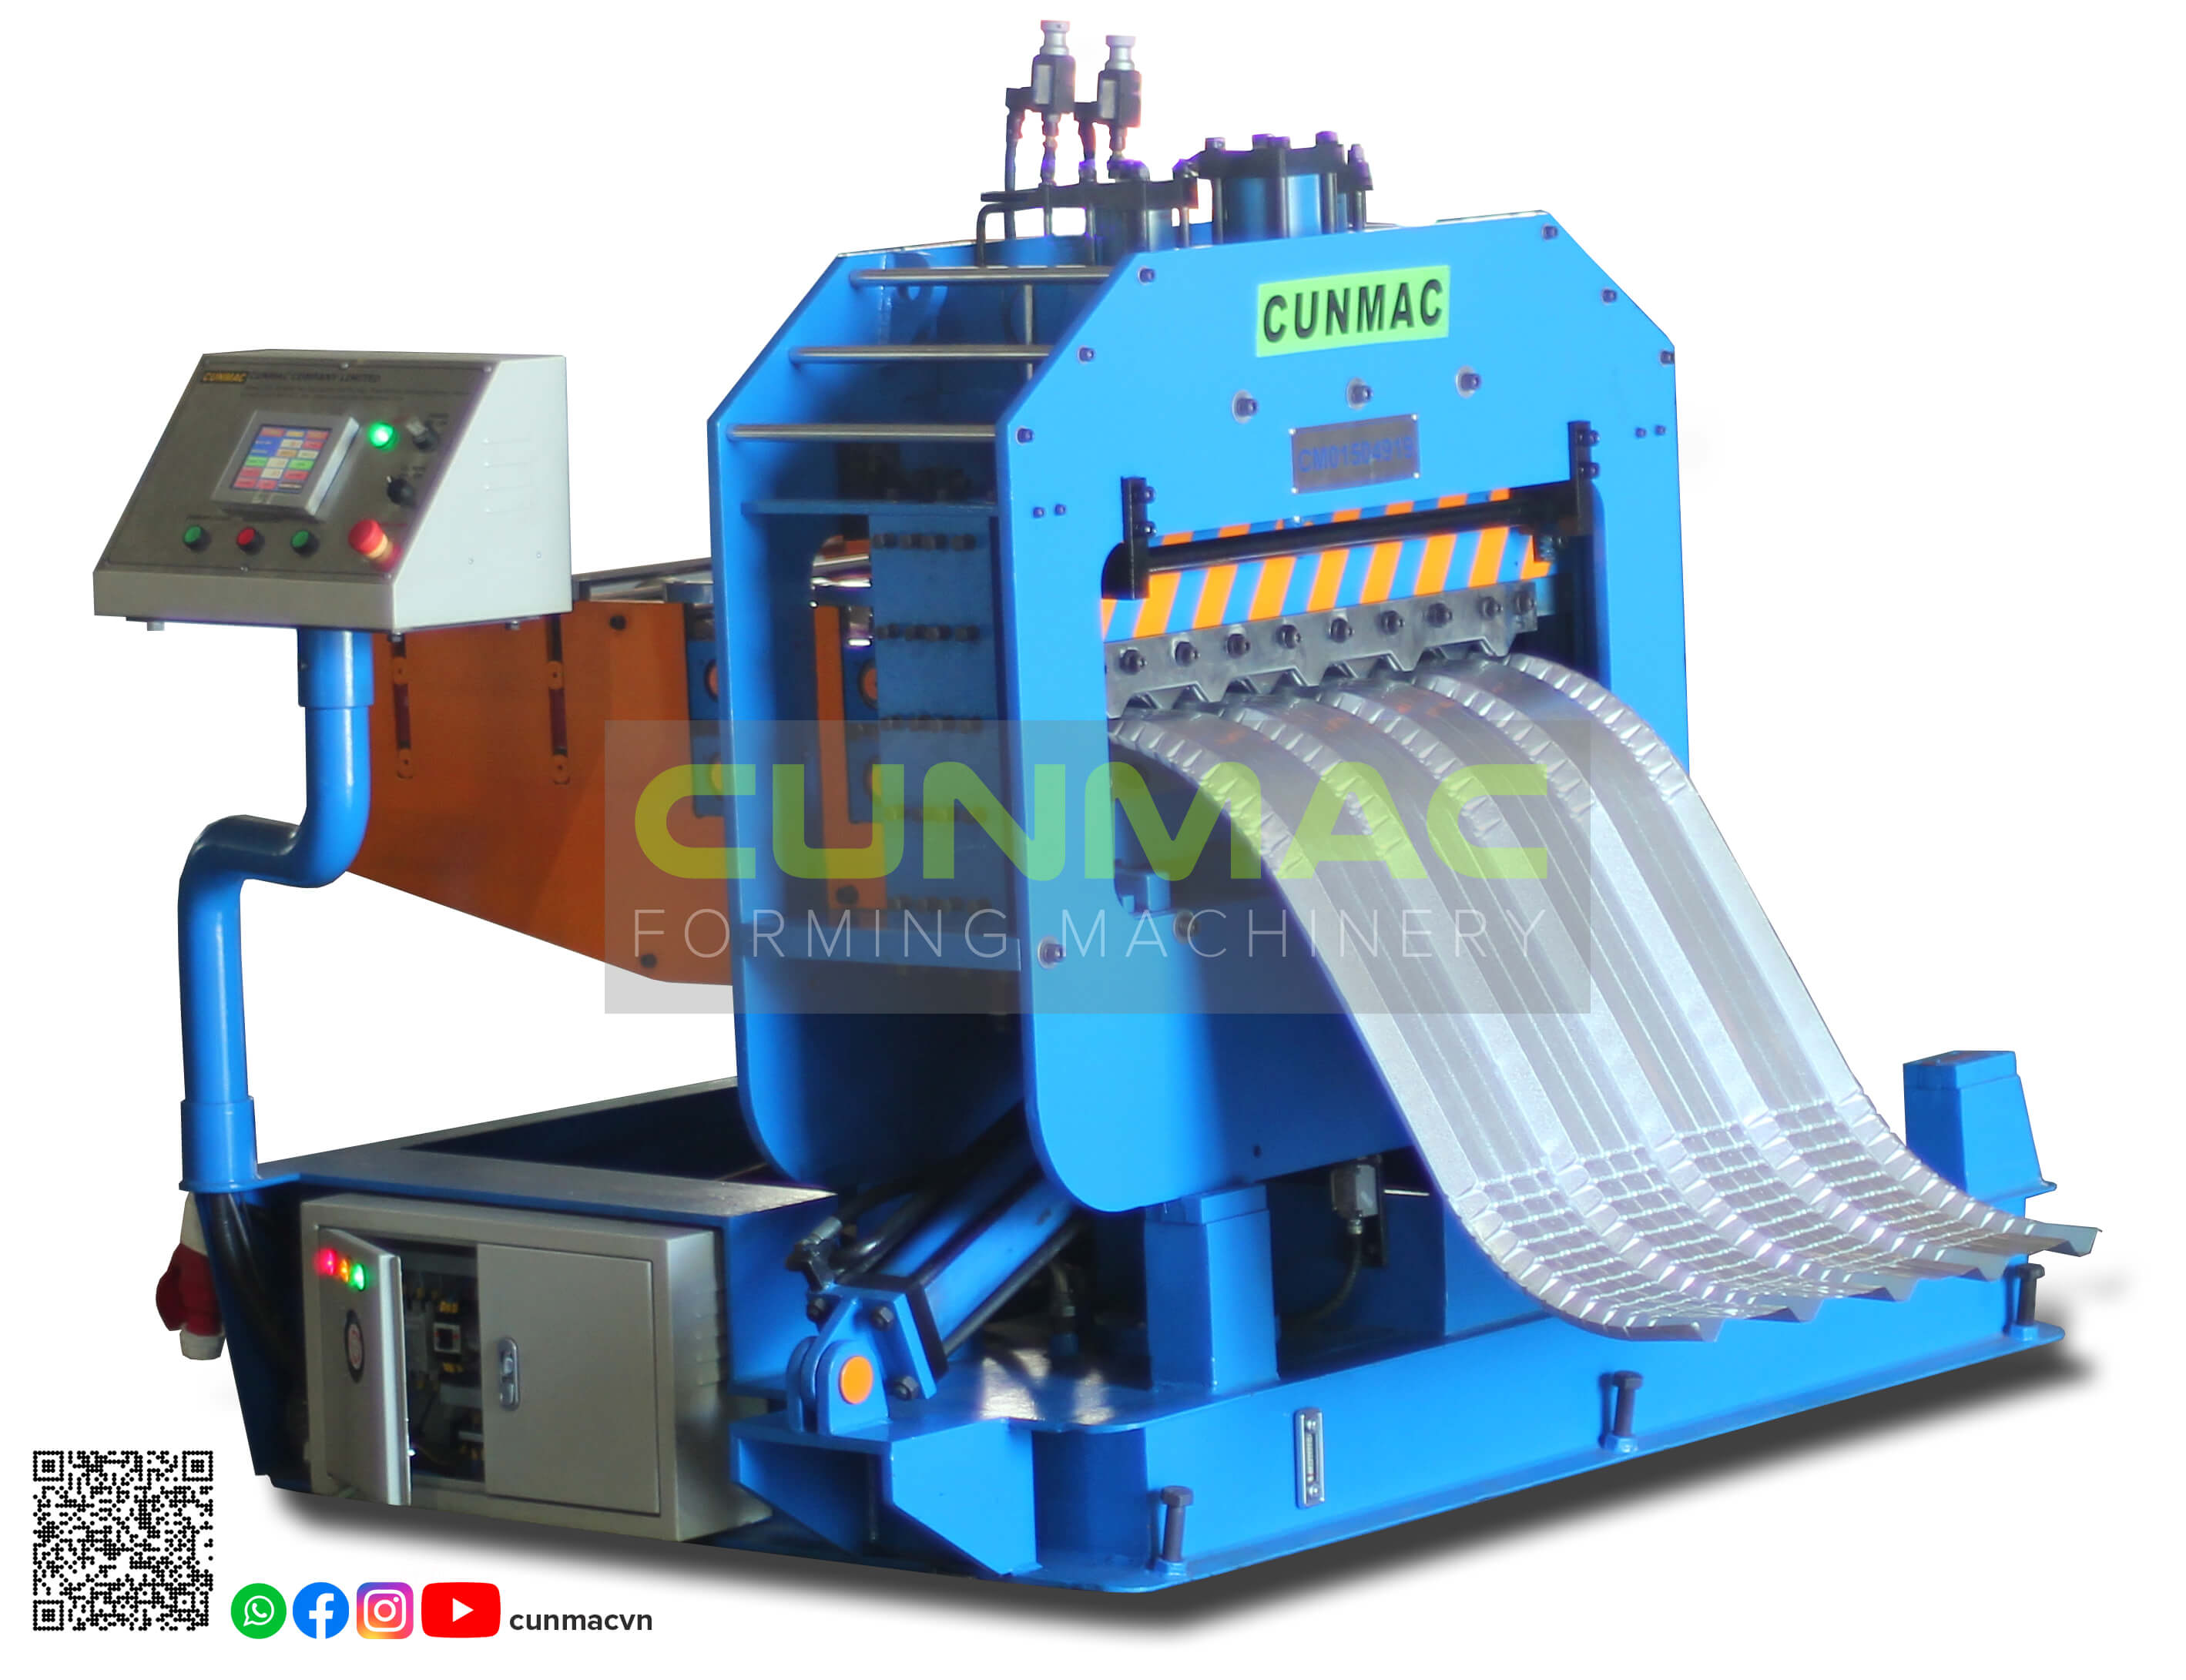 double pressing curve machine, concave machine, convex machine, crimping machine, curving machine